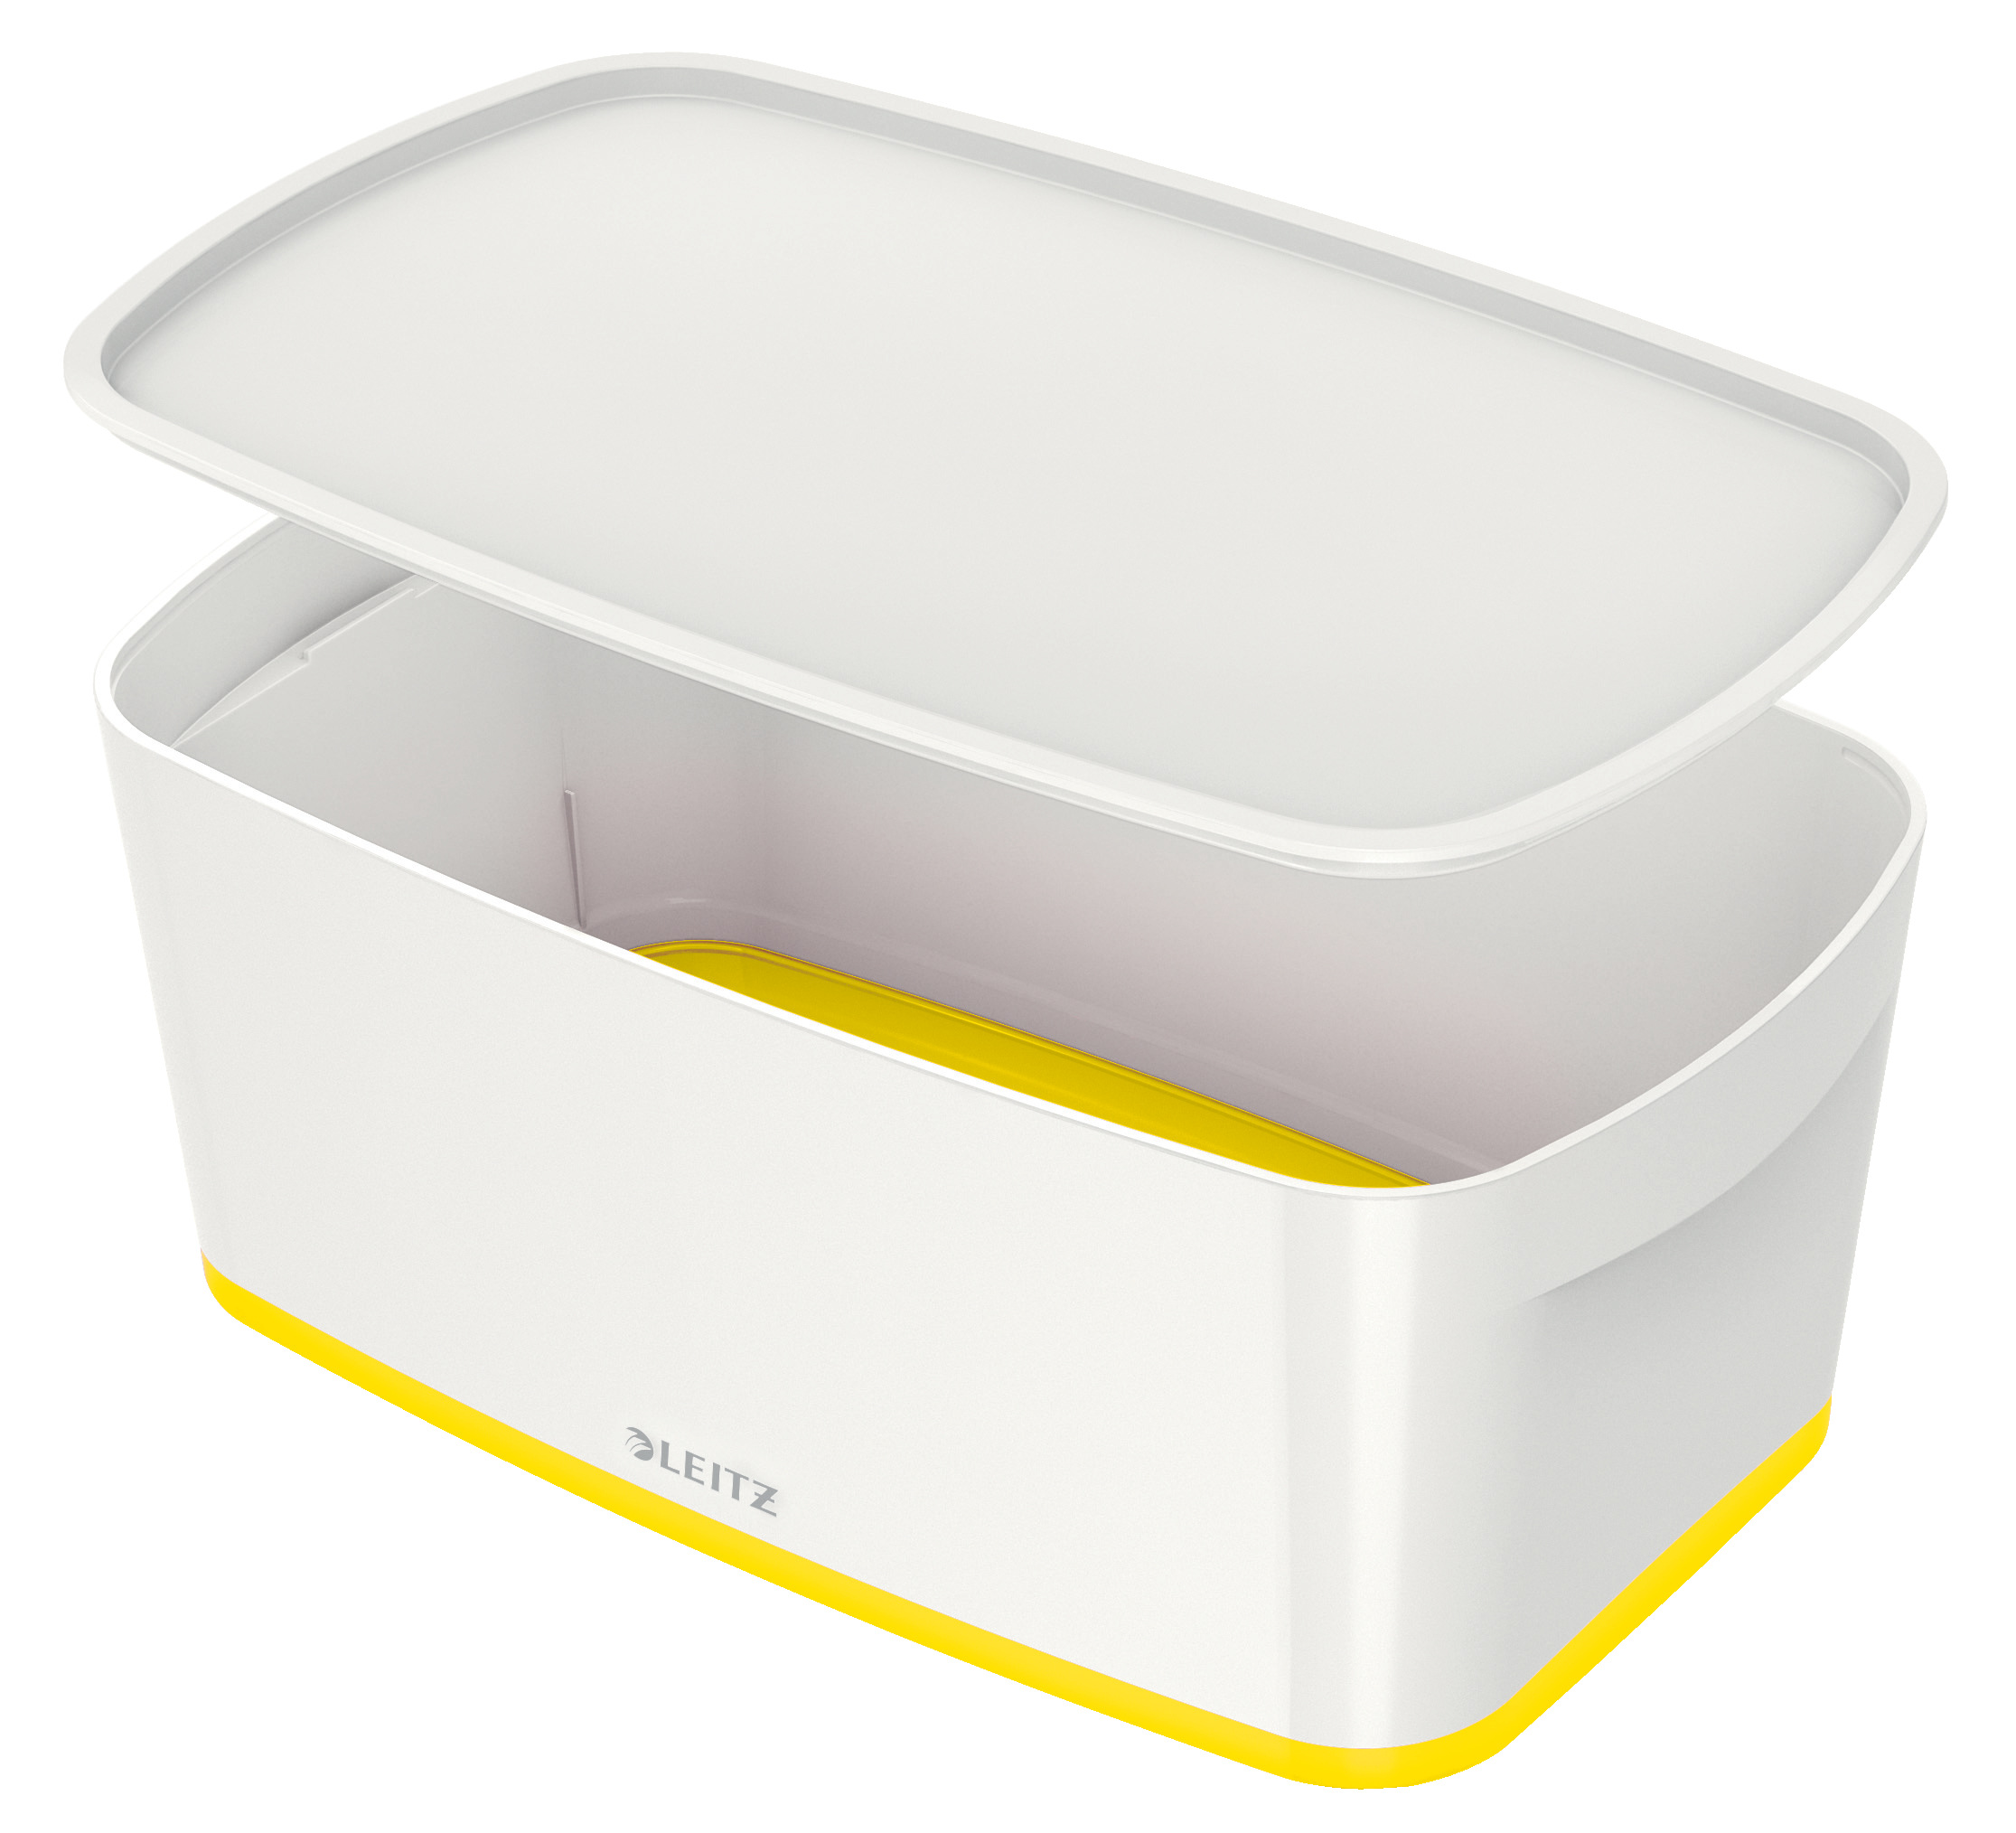 Tool Boxes Leitz MyBox Small with Lid WOW White Yellow